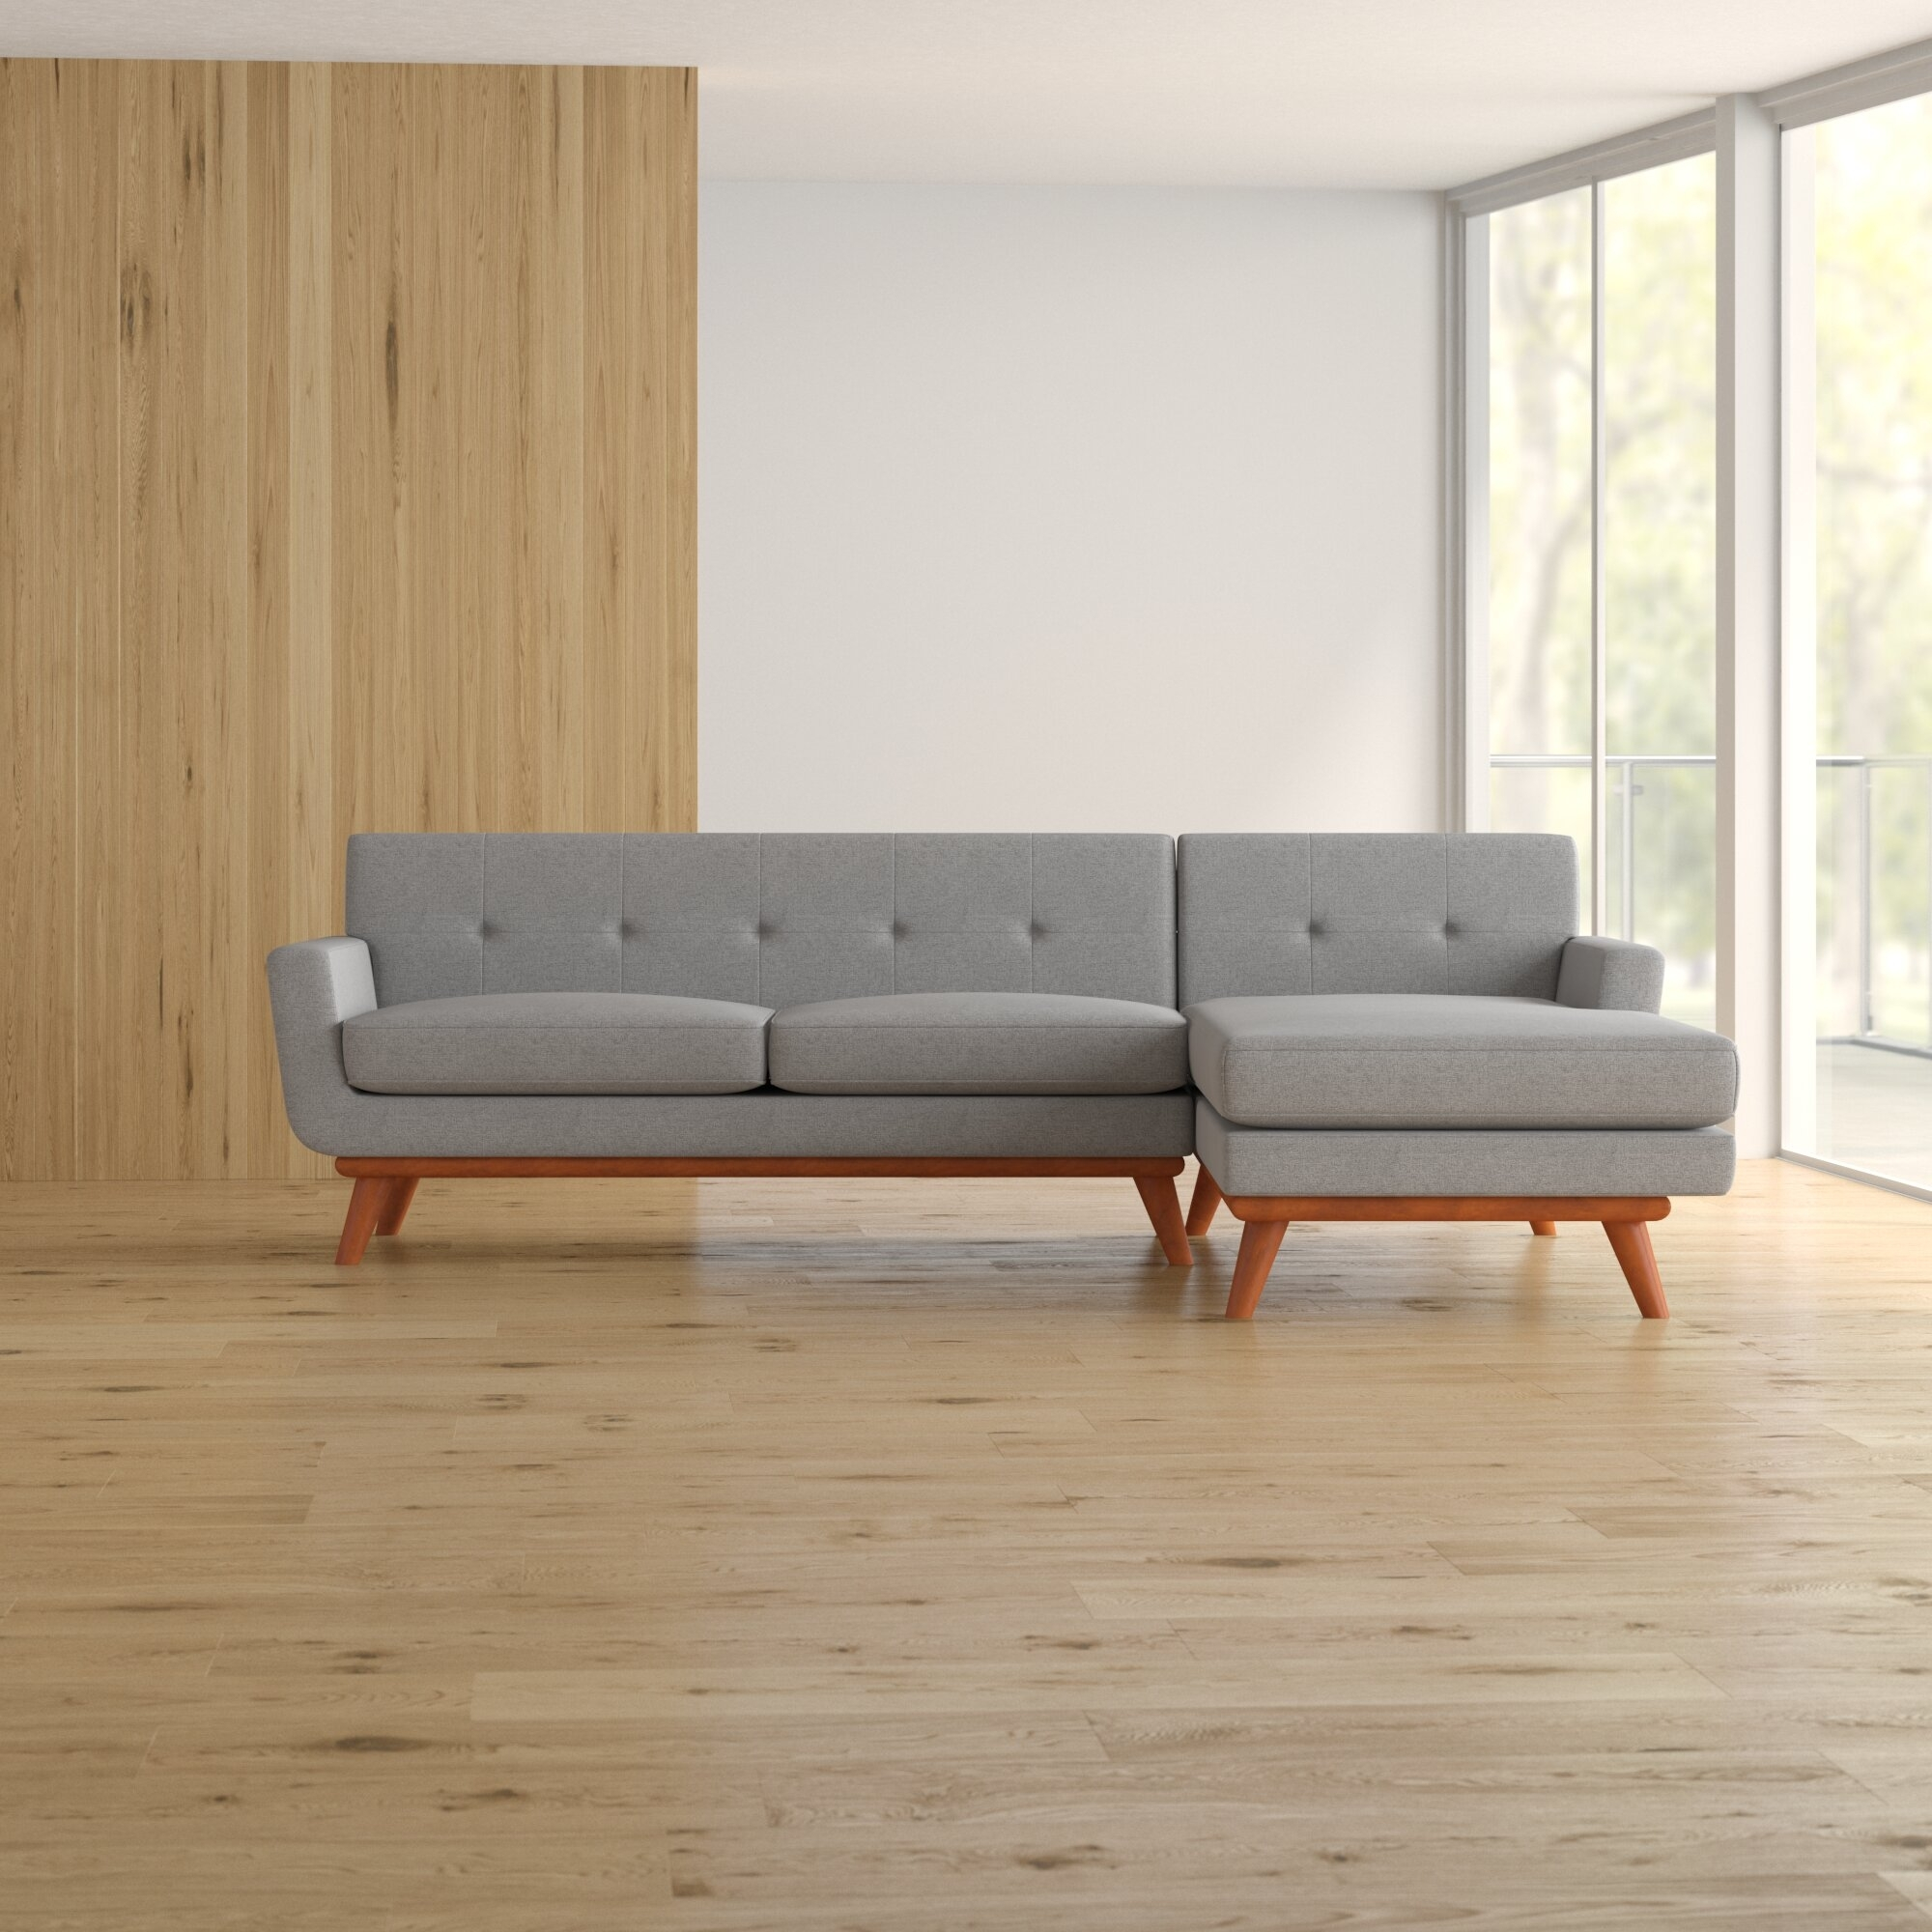 Image of: Mid Century Modern Sectional Sofa Ideas On Foter